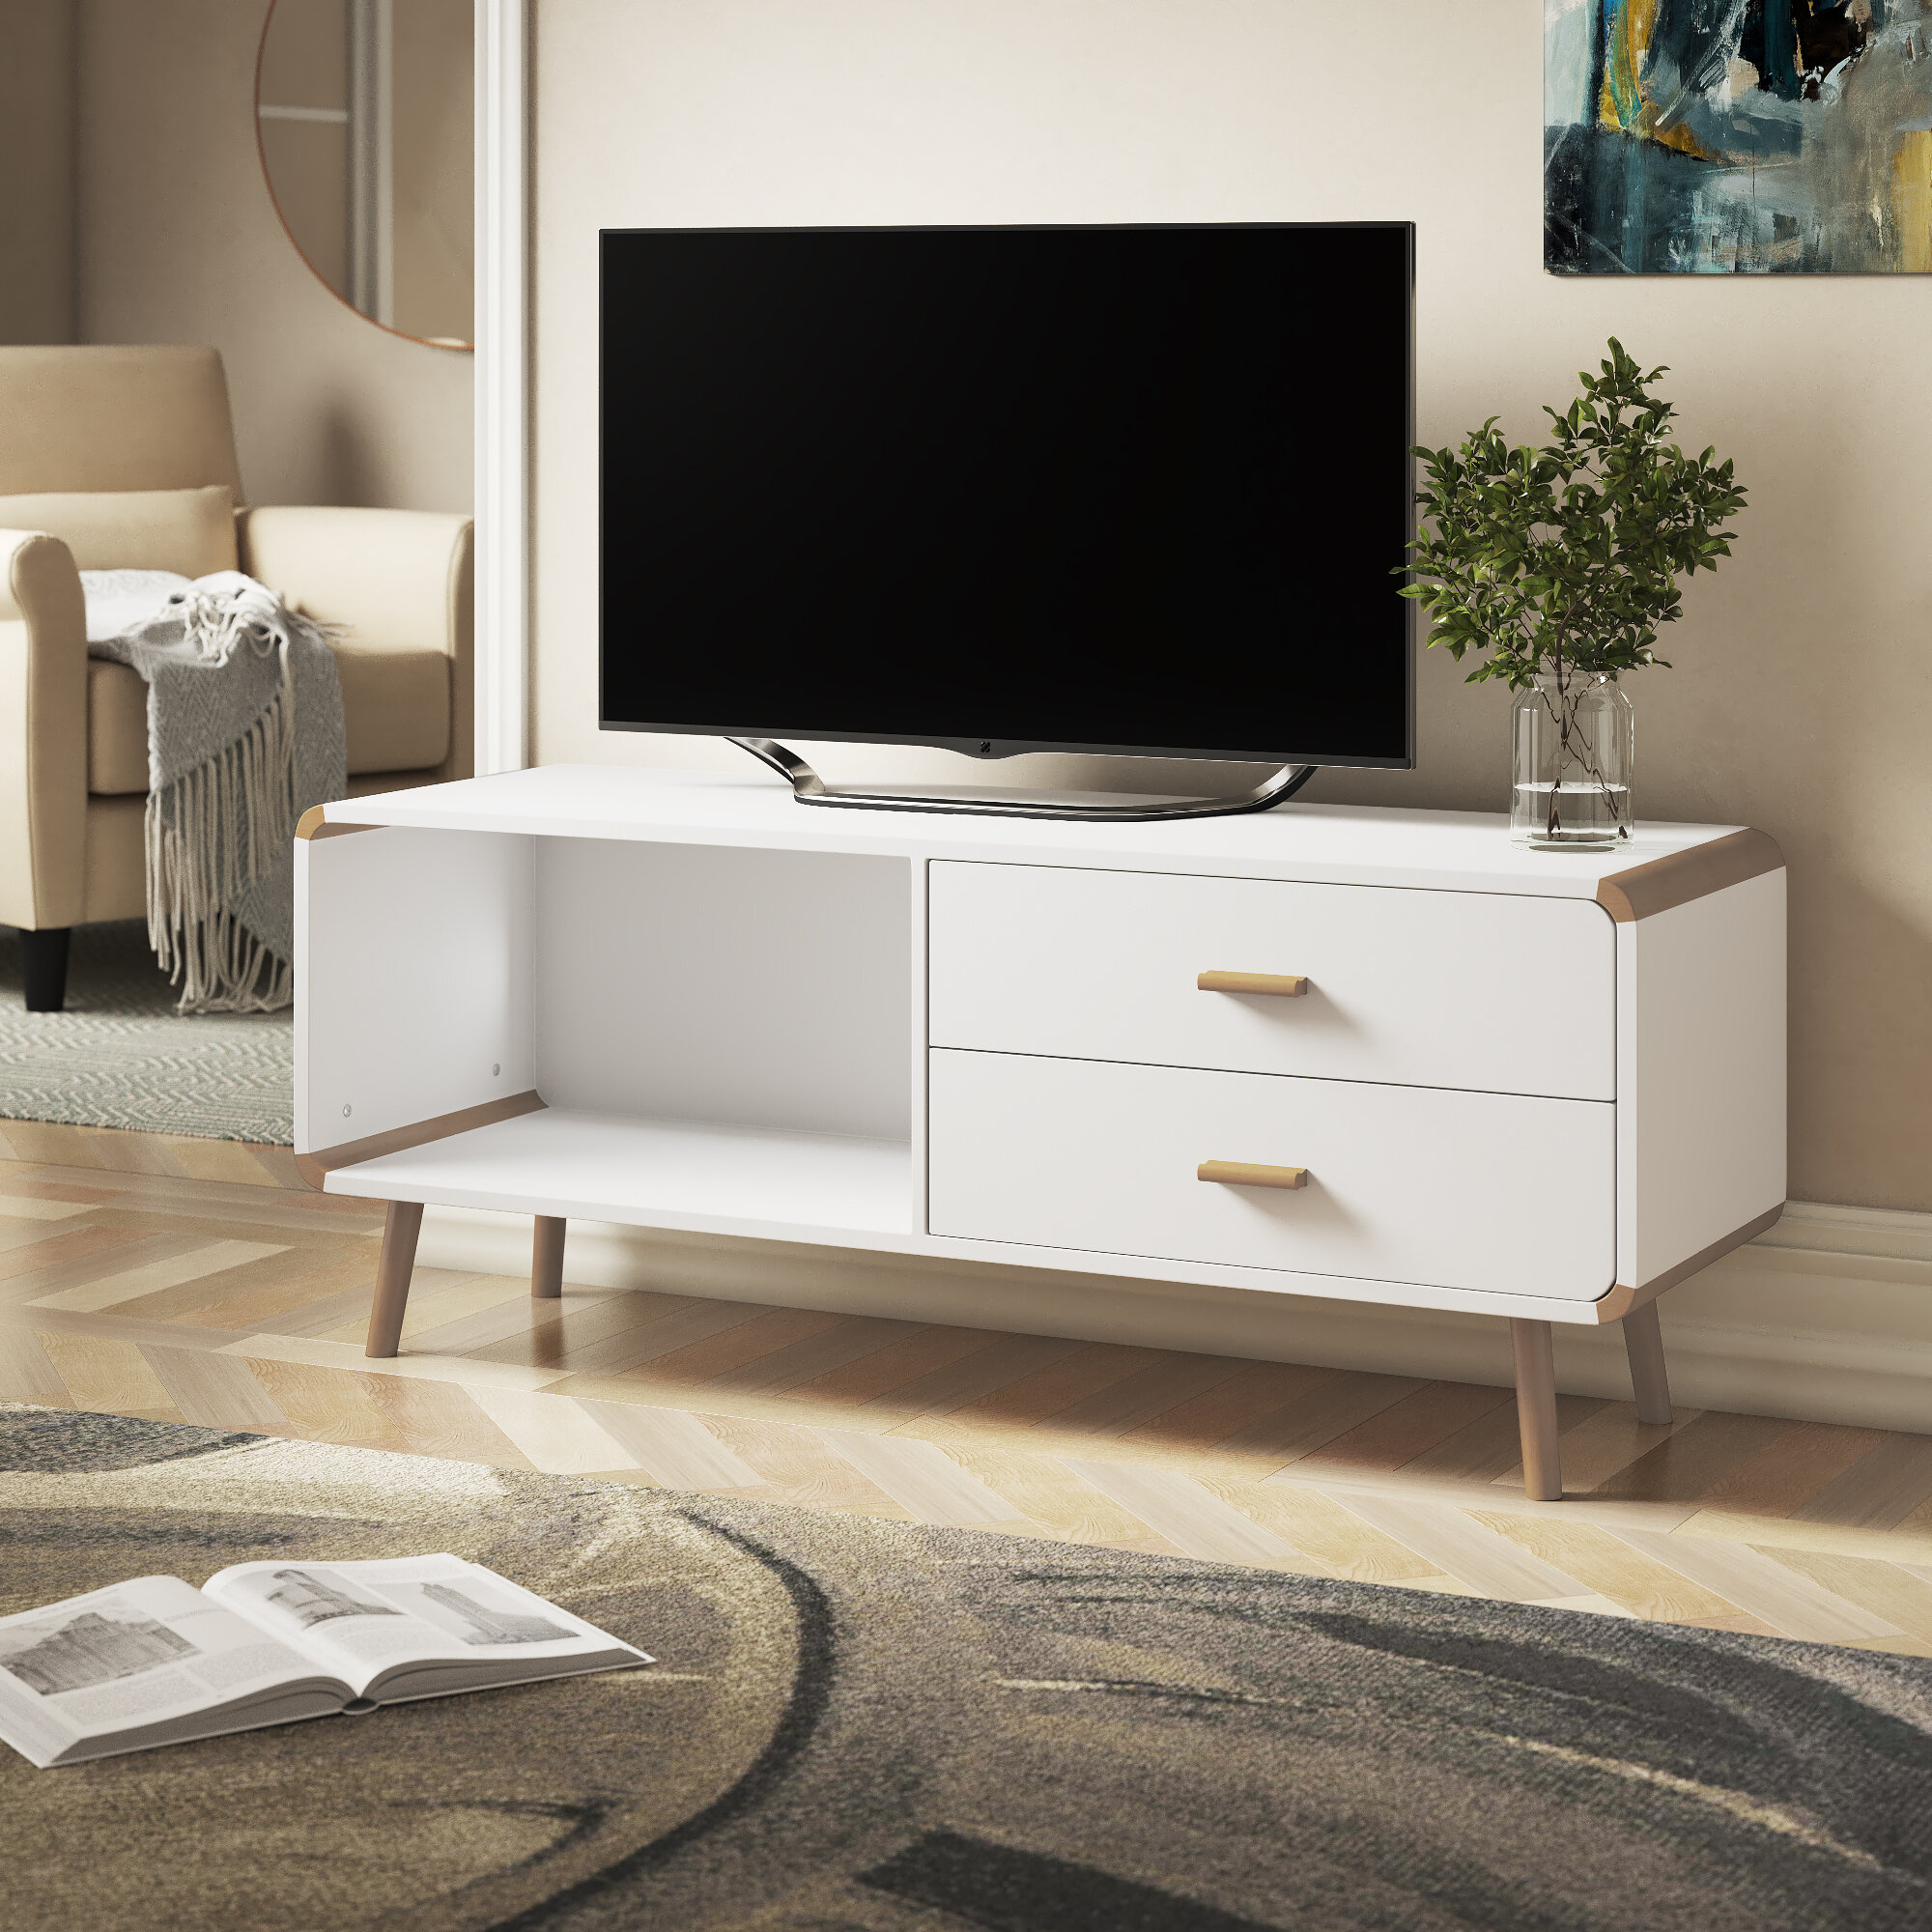 Long Storage Drawers TV Stand